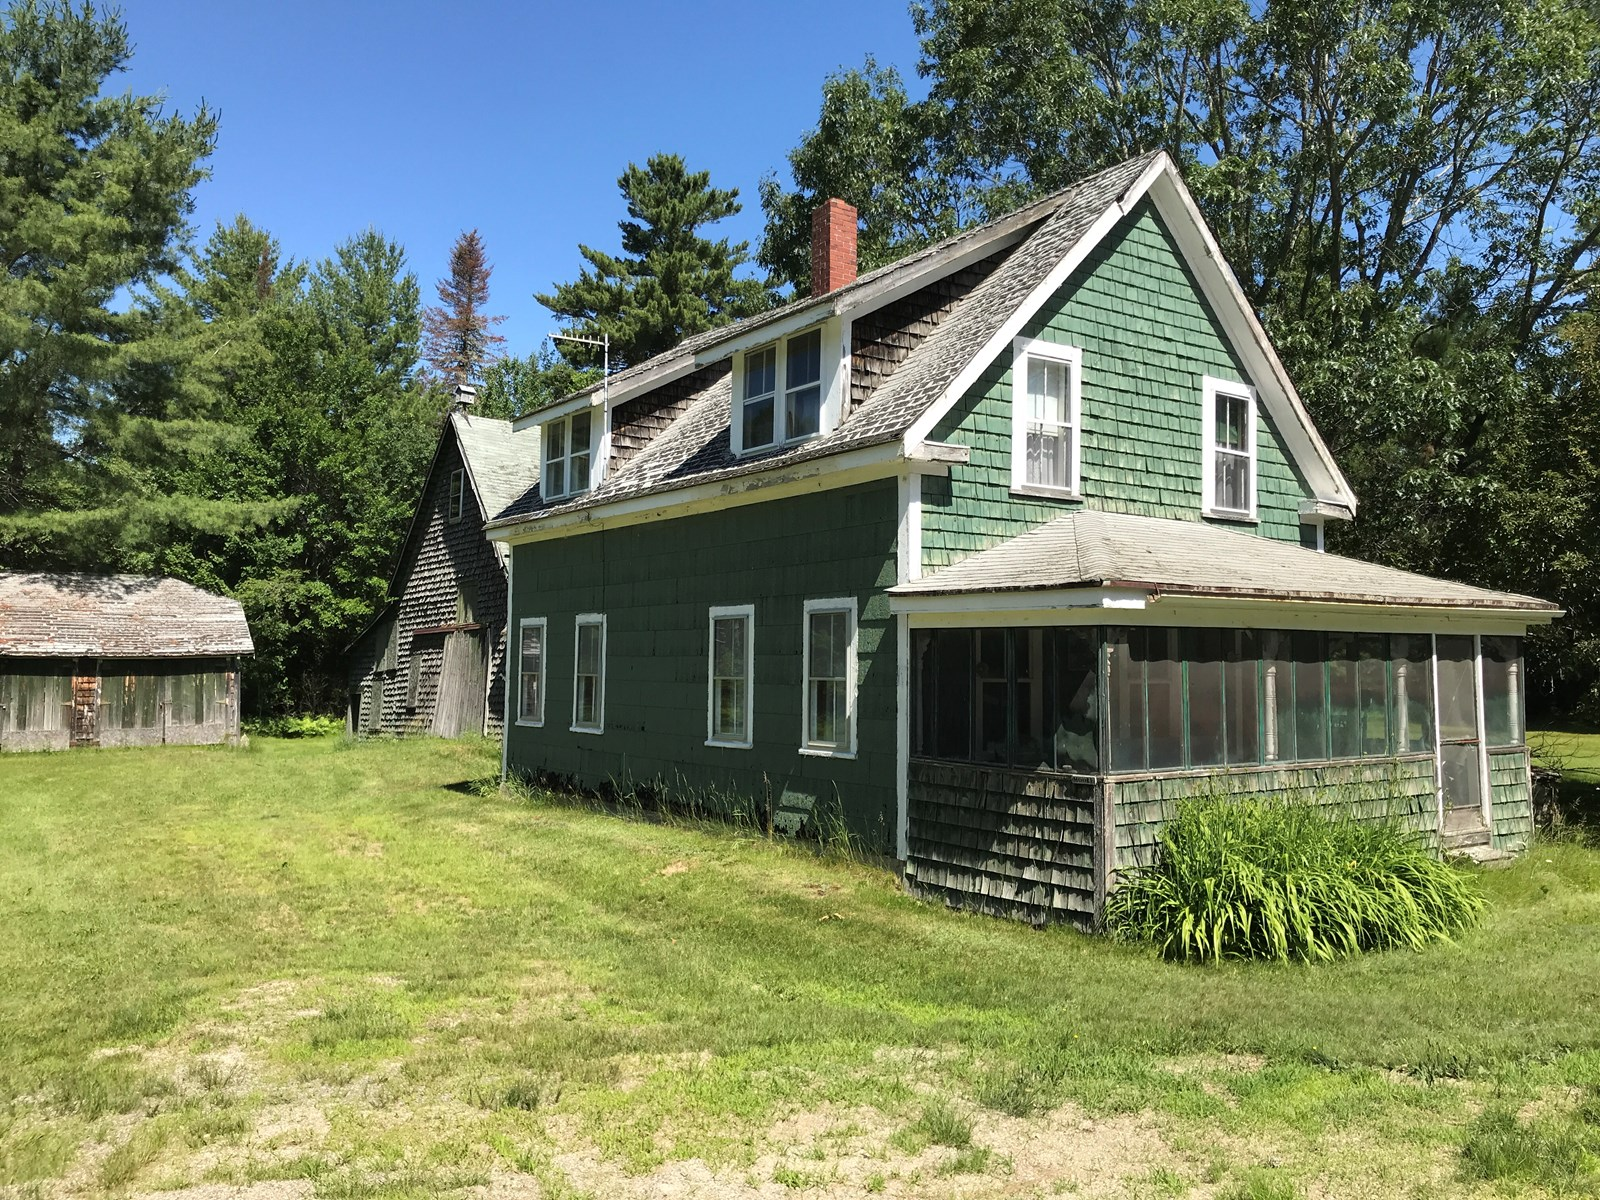 Country Farmhouse for Sale in Grand Falls, ME